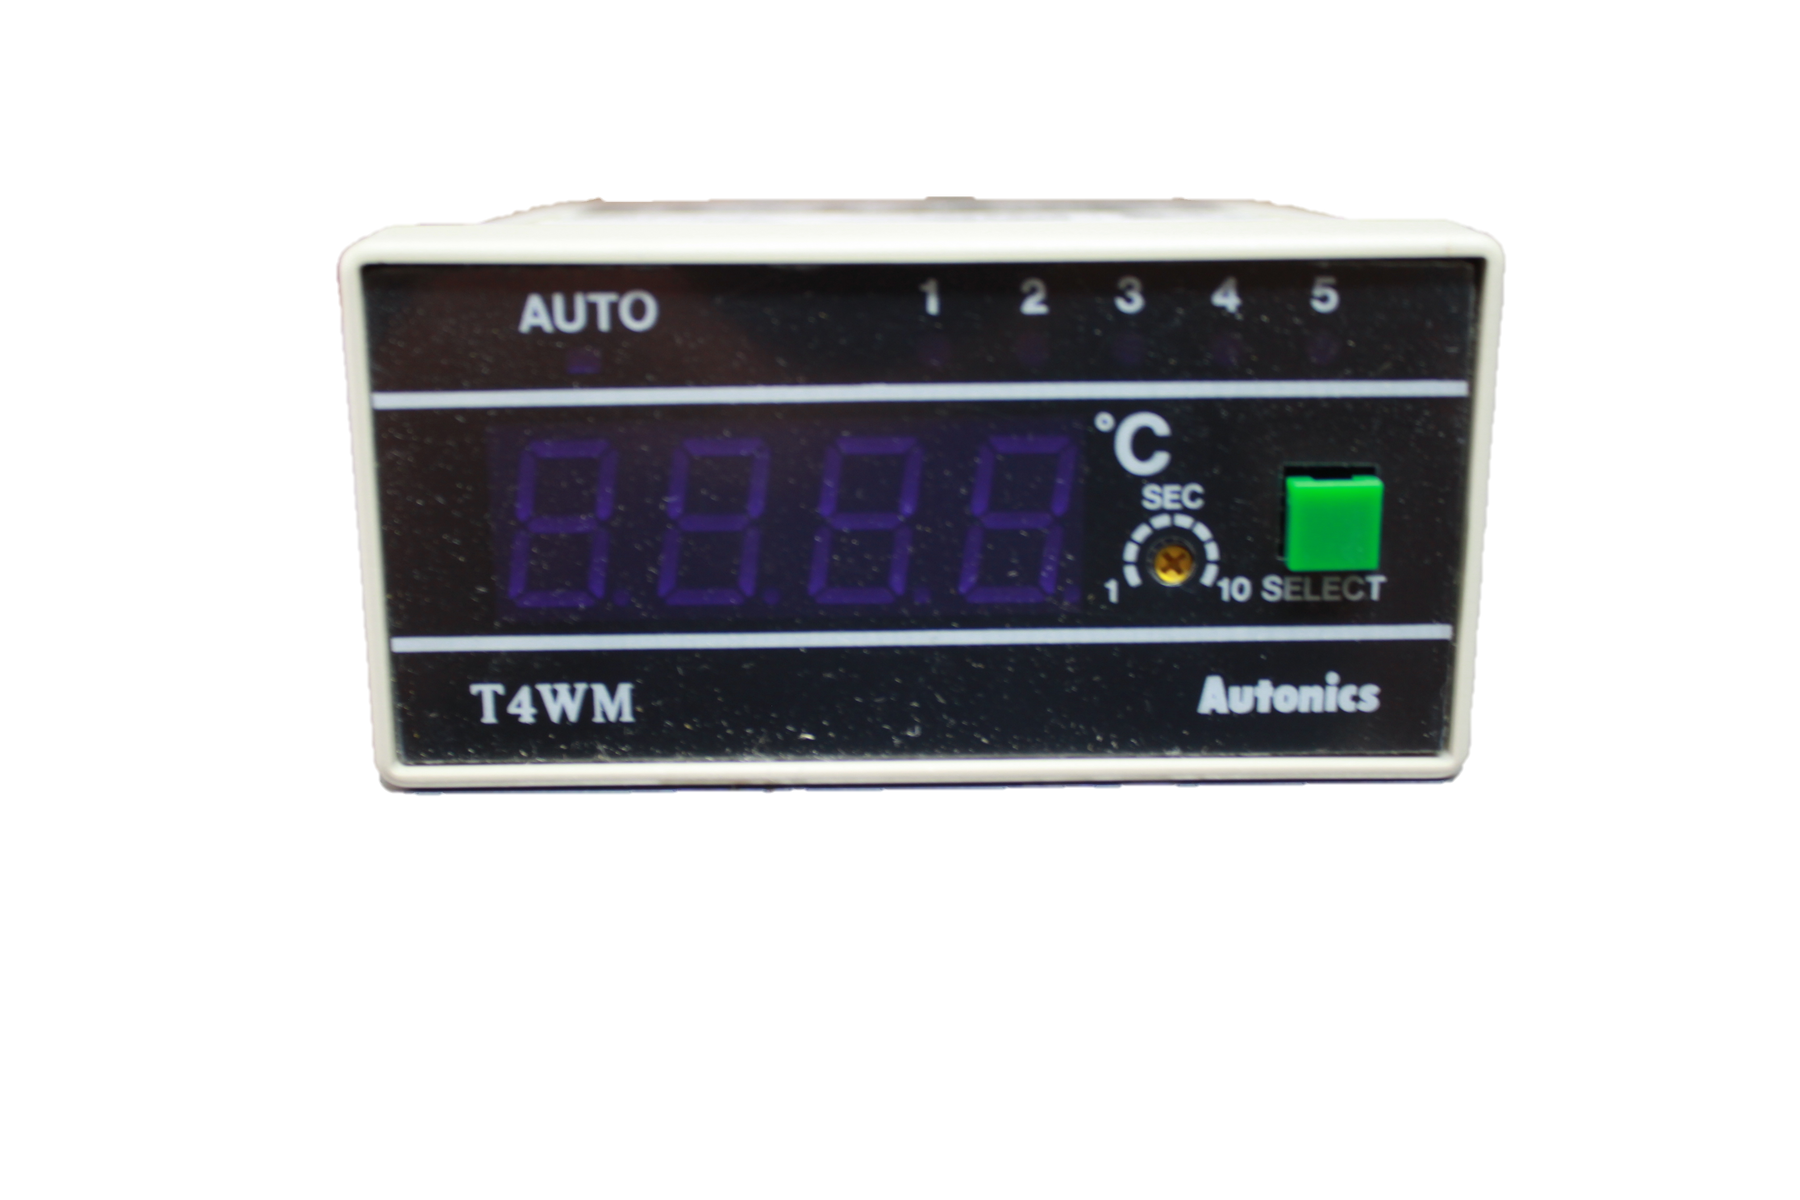 AUTONICS T4WM-N3KCC